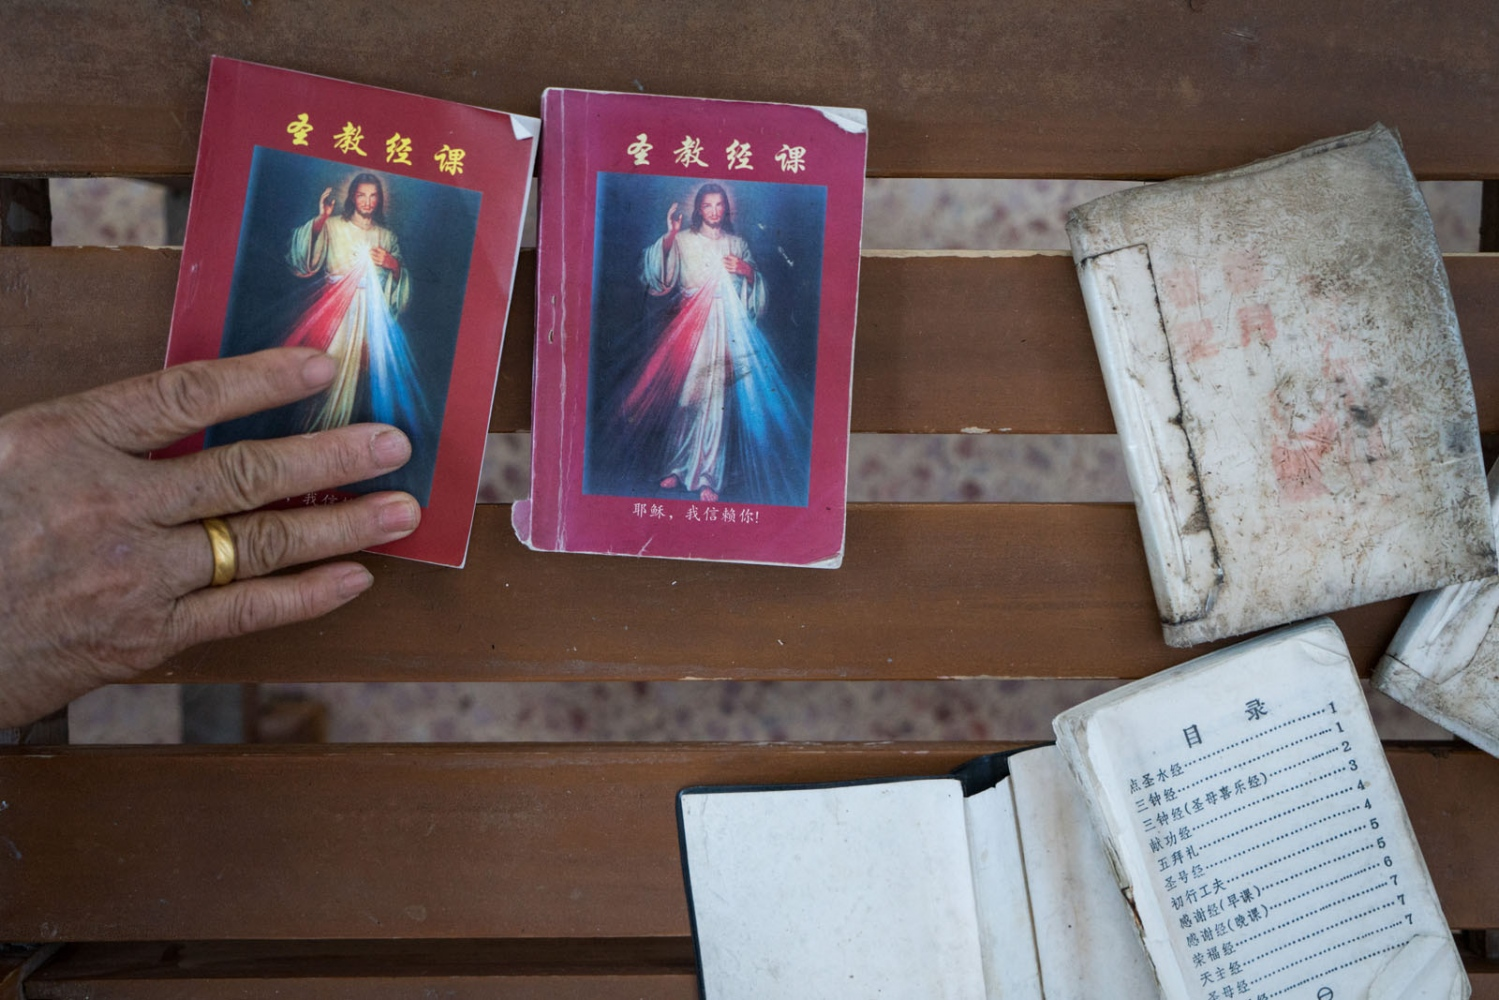 Prayer books left on the bench of Luotianba Church in Guangdong province, China on March 4, 2018.